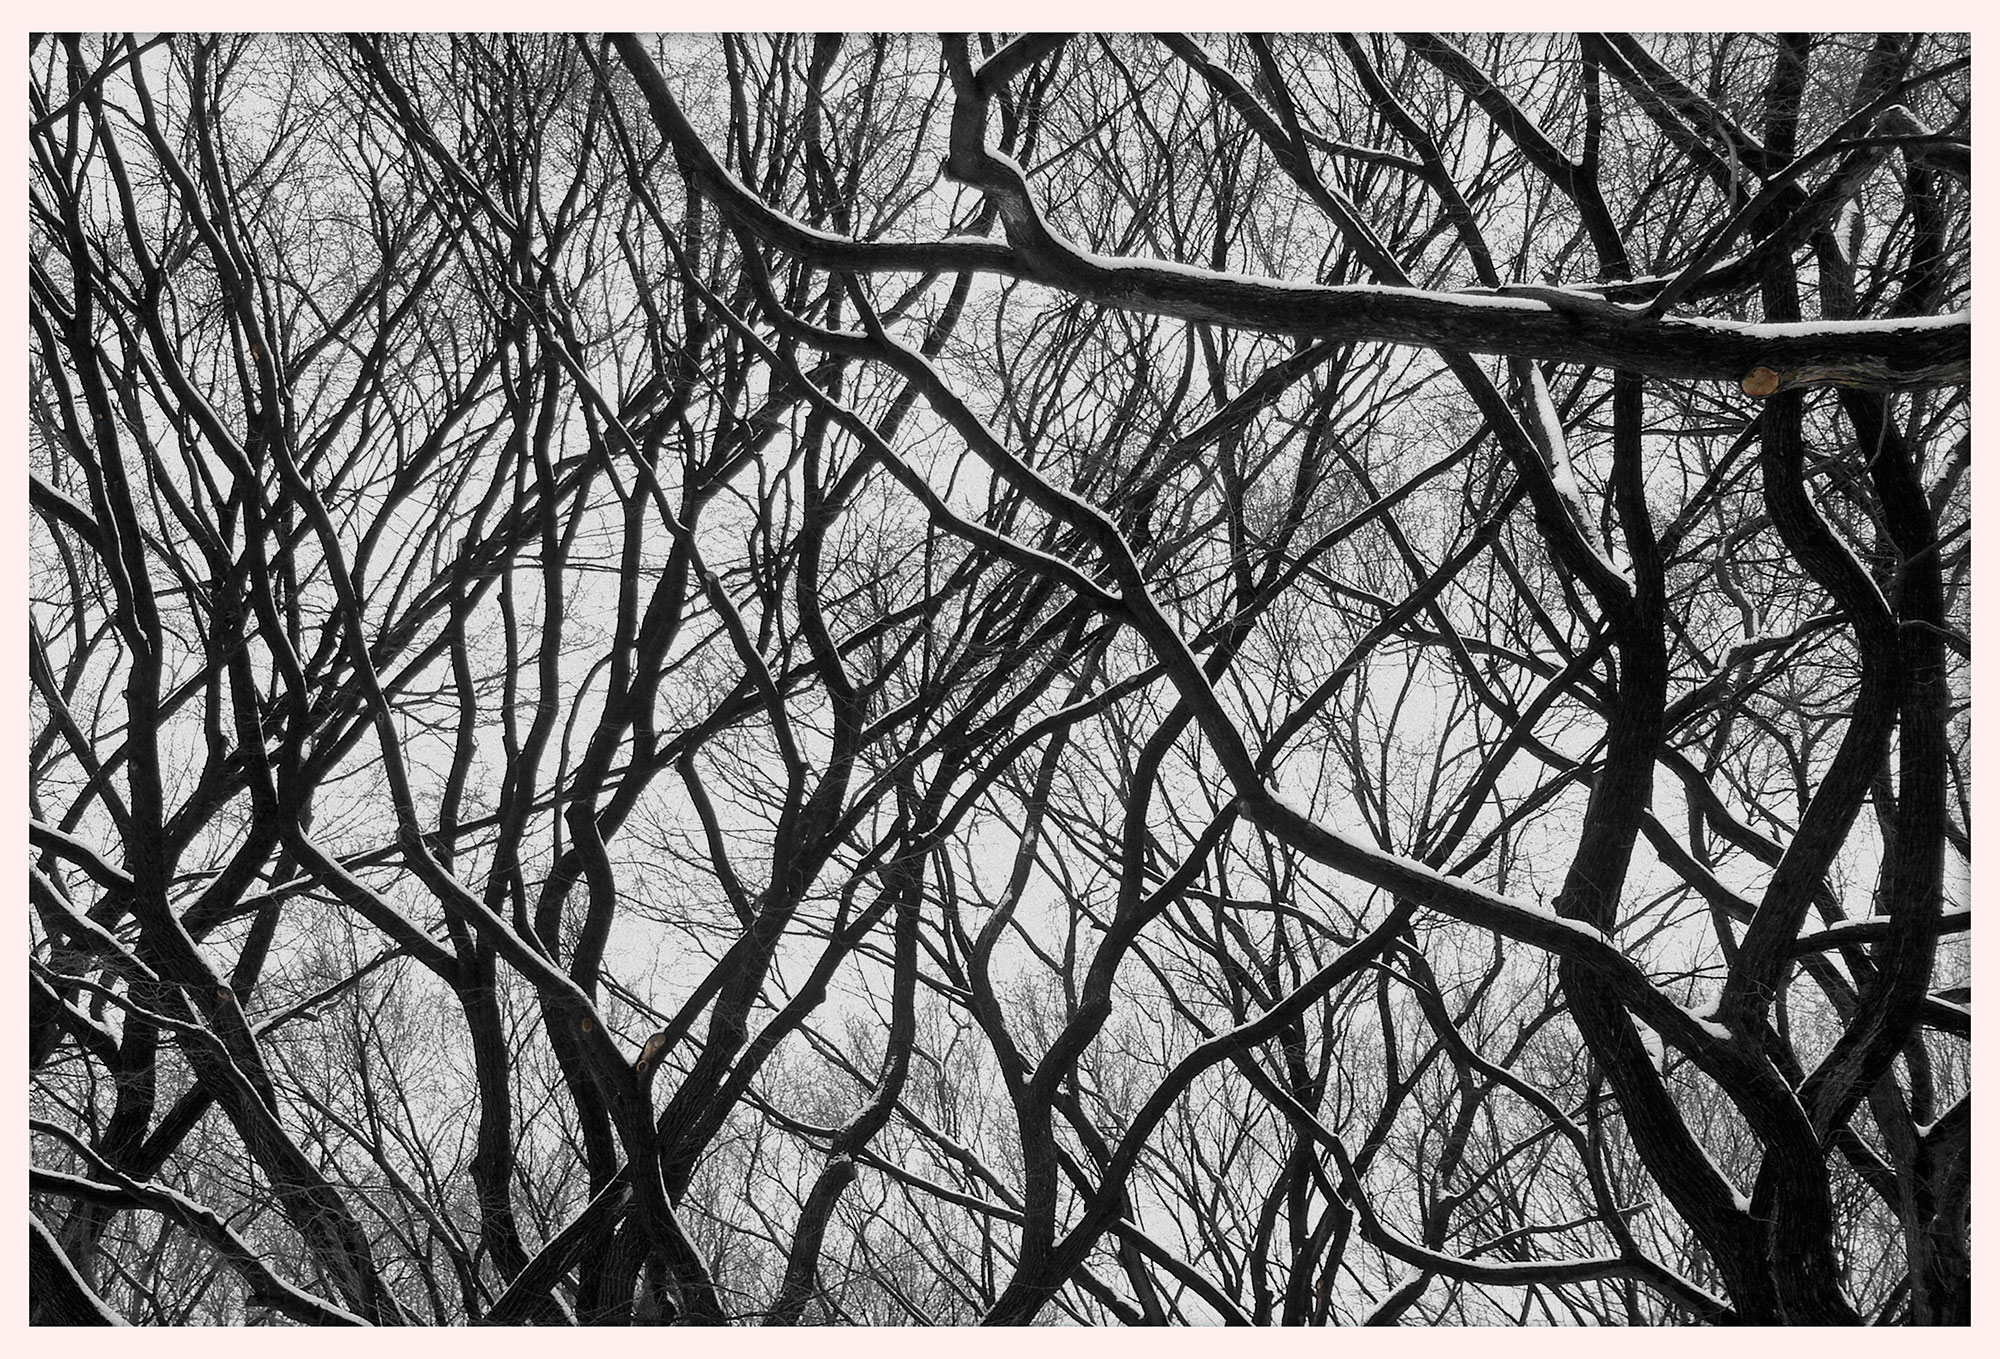 Snowy trees in New York City's Central Park. © 2005.